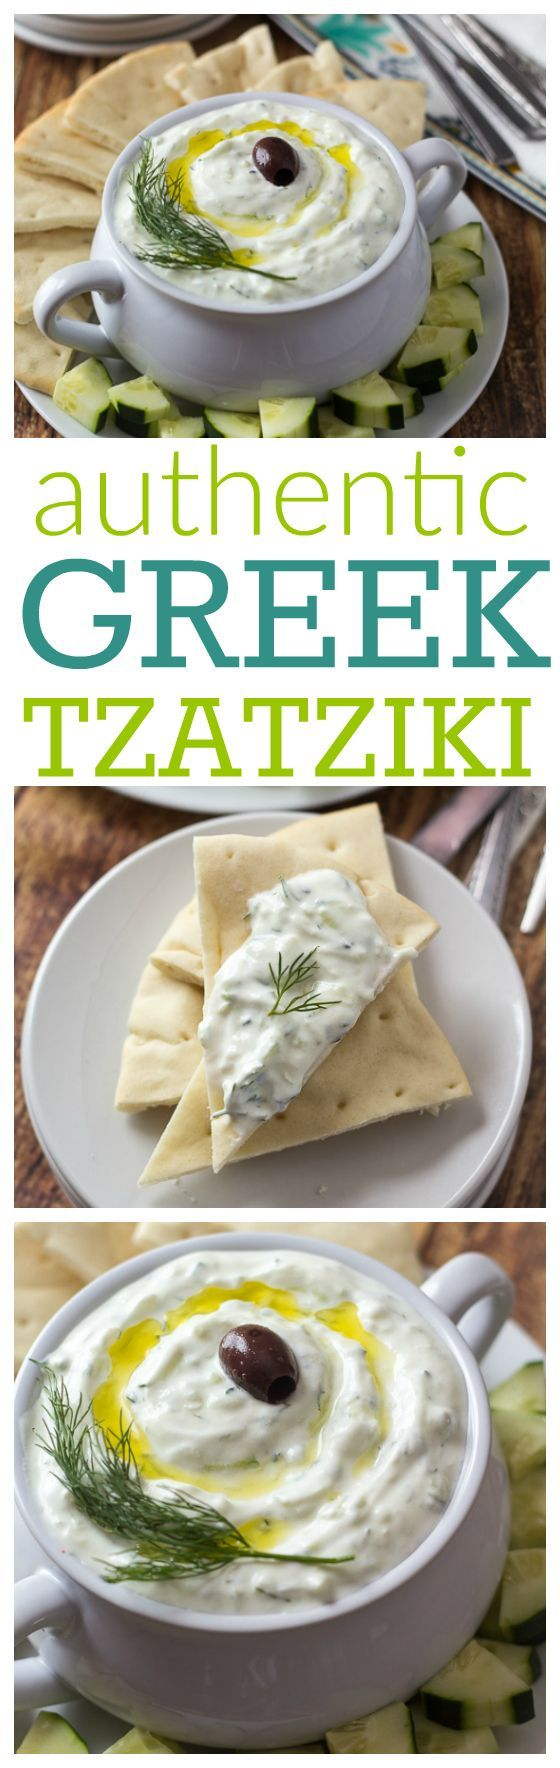 This is the best way to make REAL authentic Greek tzatziki! You can make it ahead of time and it just keeps getting tastier. #healthy #eatclean